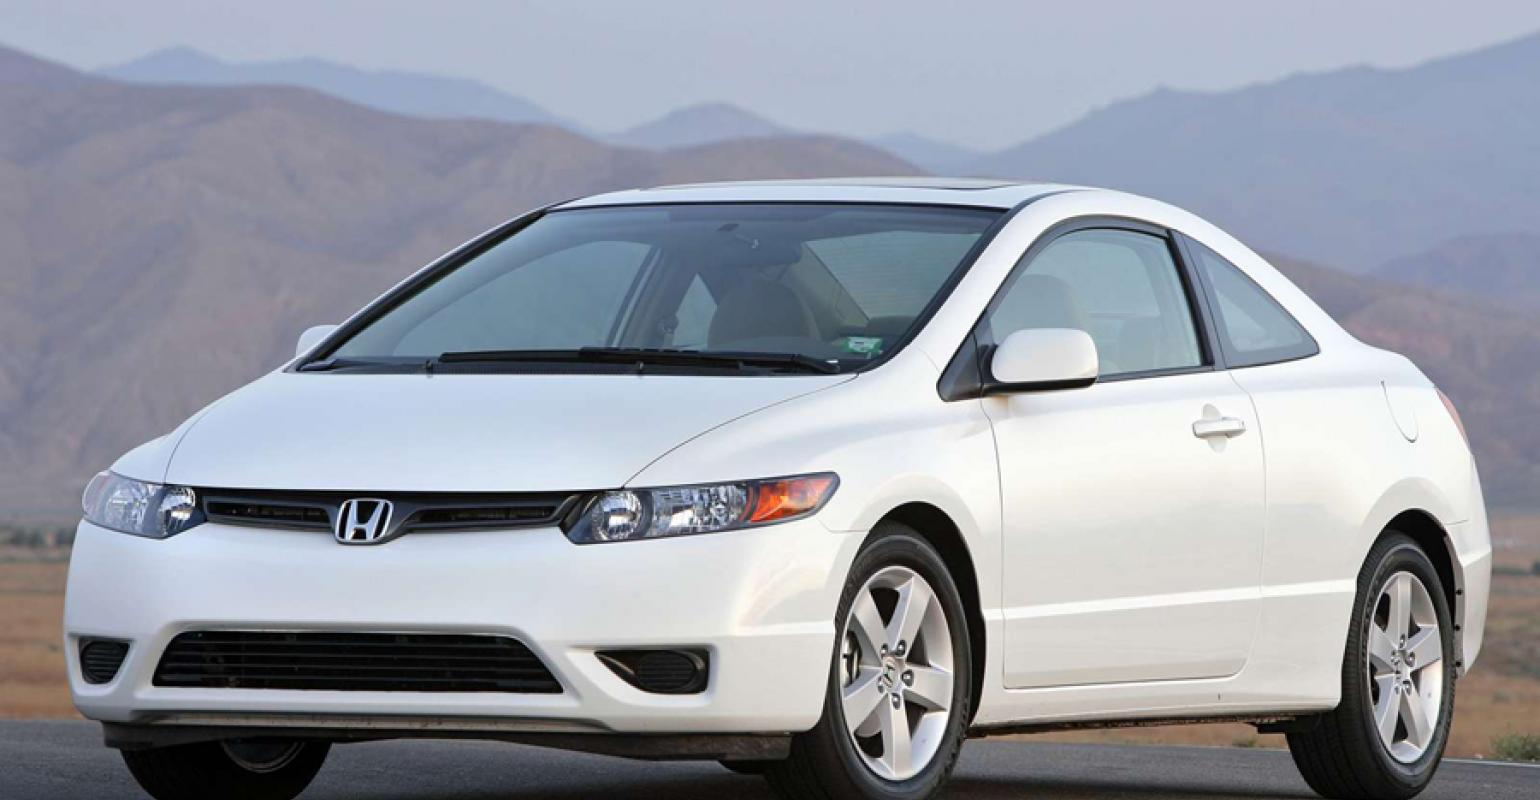 Honda Civic Owneru0027s Court Win Could Change MPG Testing